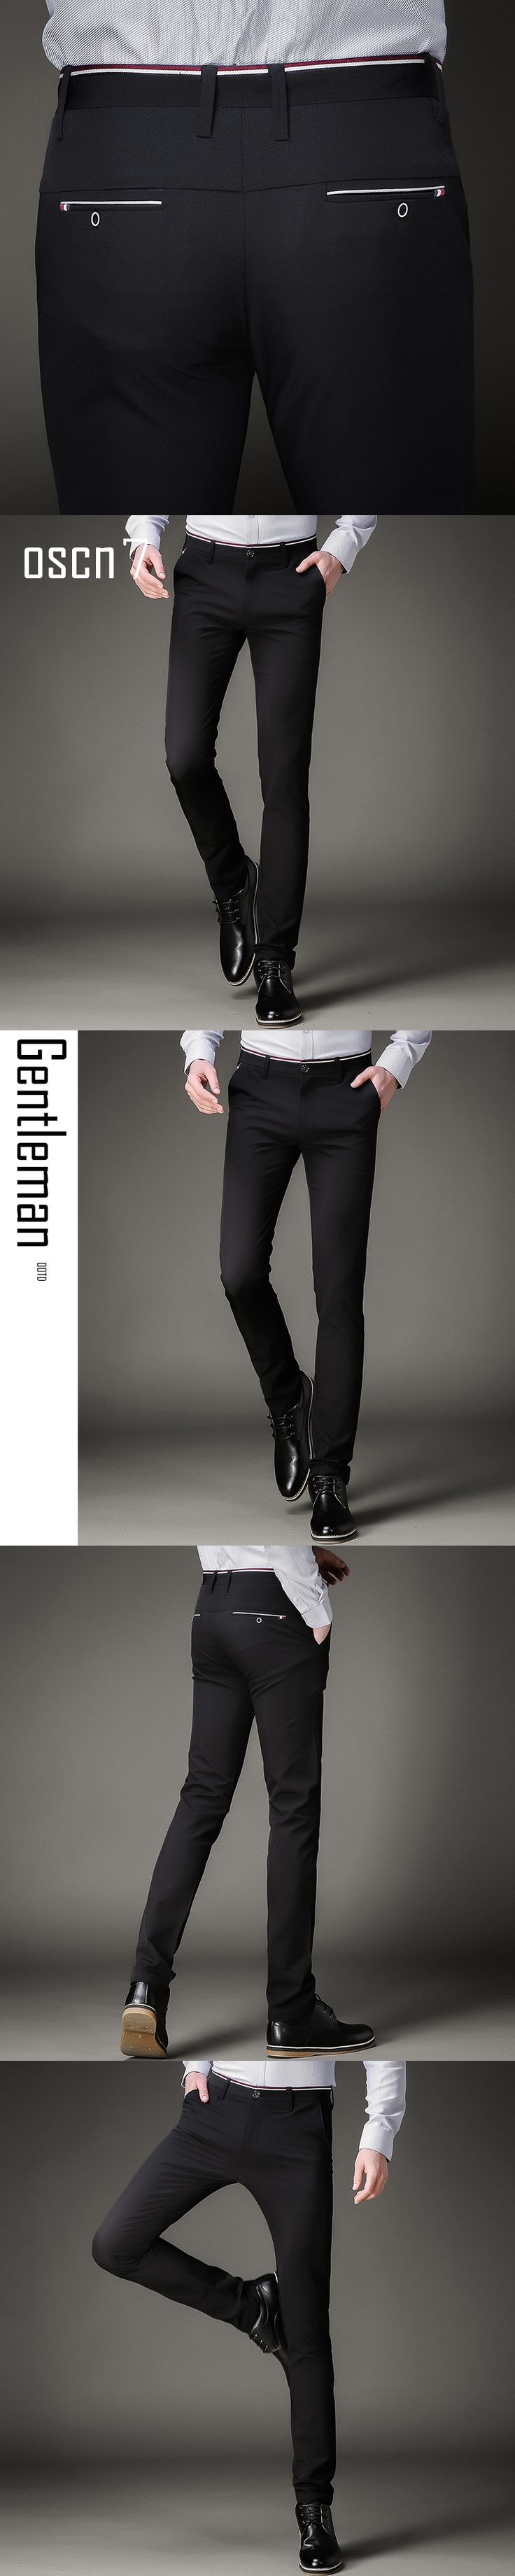 OSCN7 Black Elastic Perfume Masculino Slim Dress Pants for Men High Waist Business Mens Pants Formal Pantalon Homme Classique